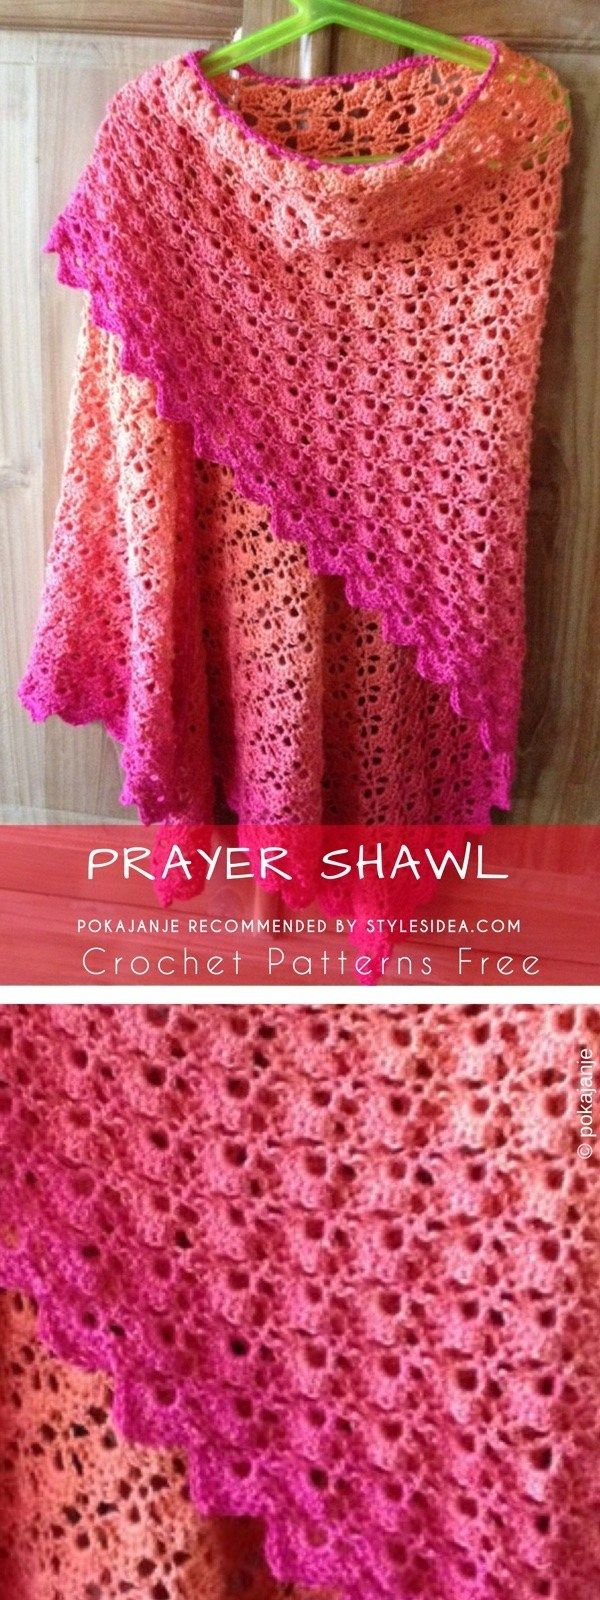 30 Pretty Photo of Prayer Shawl Crochet Pattern #prayershawls